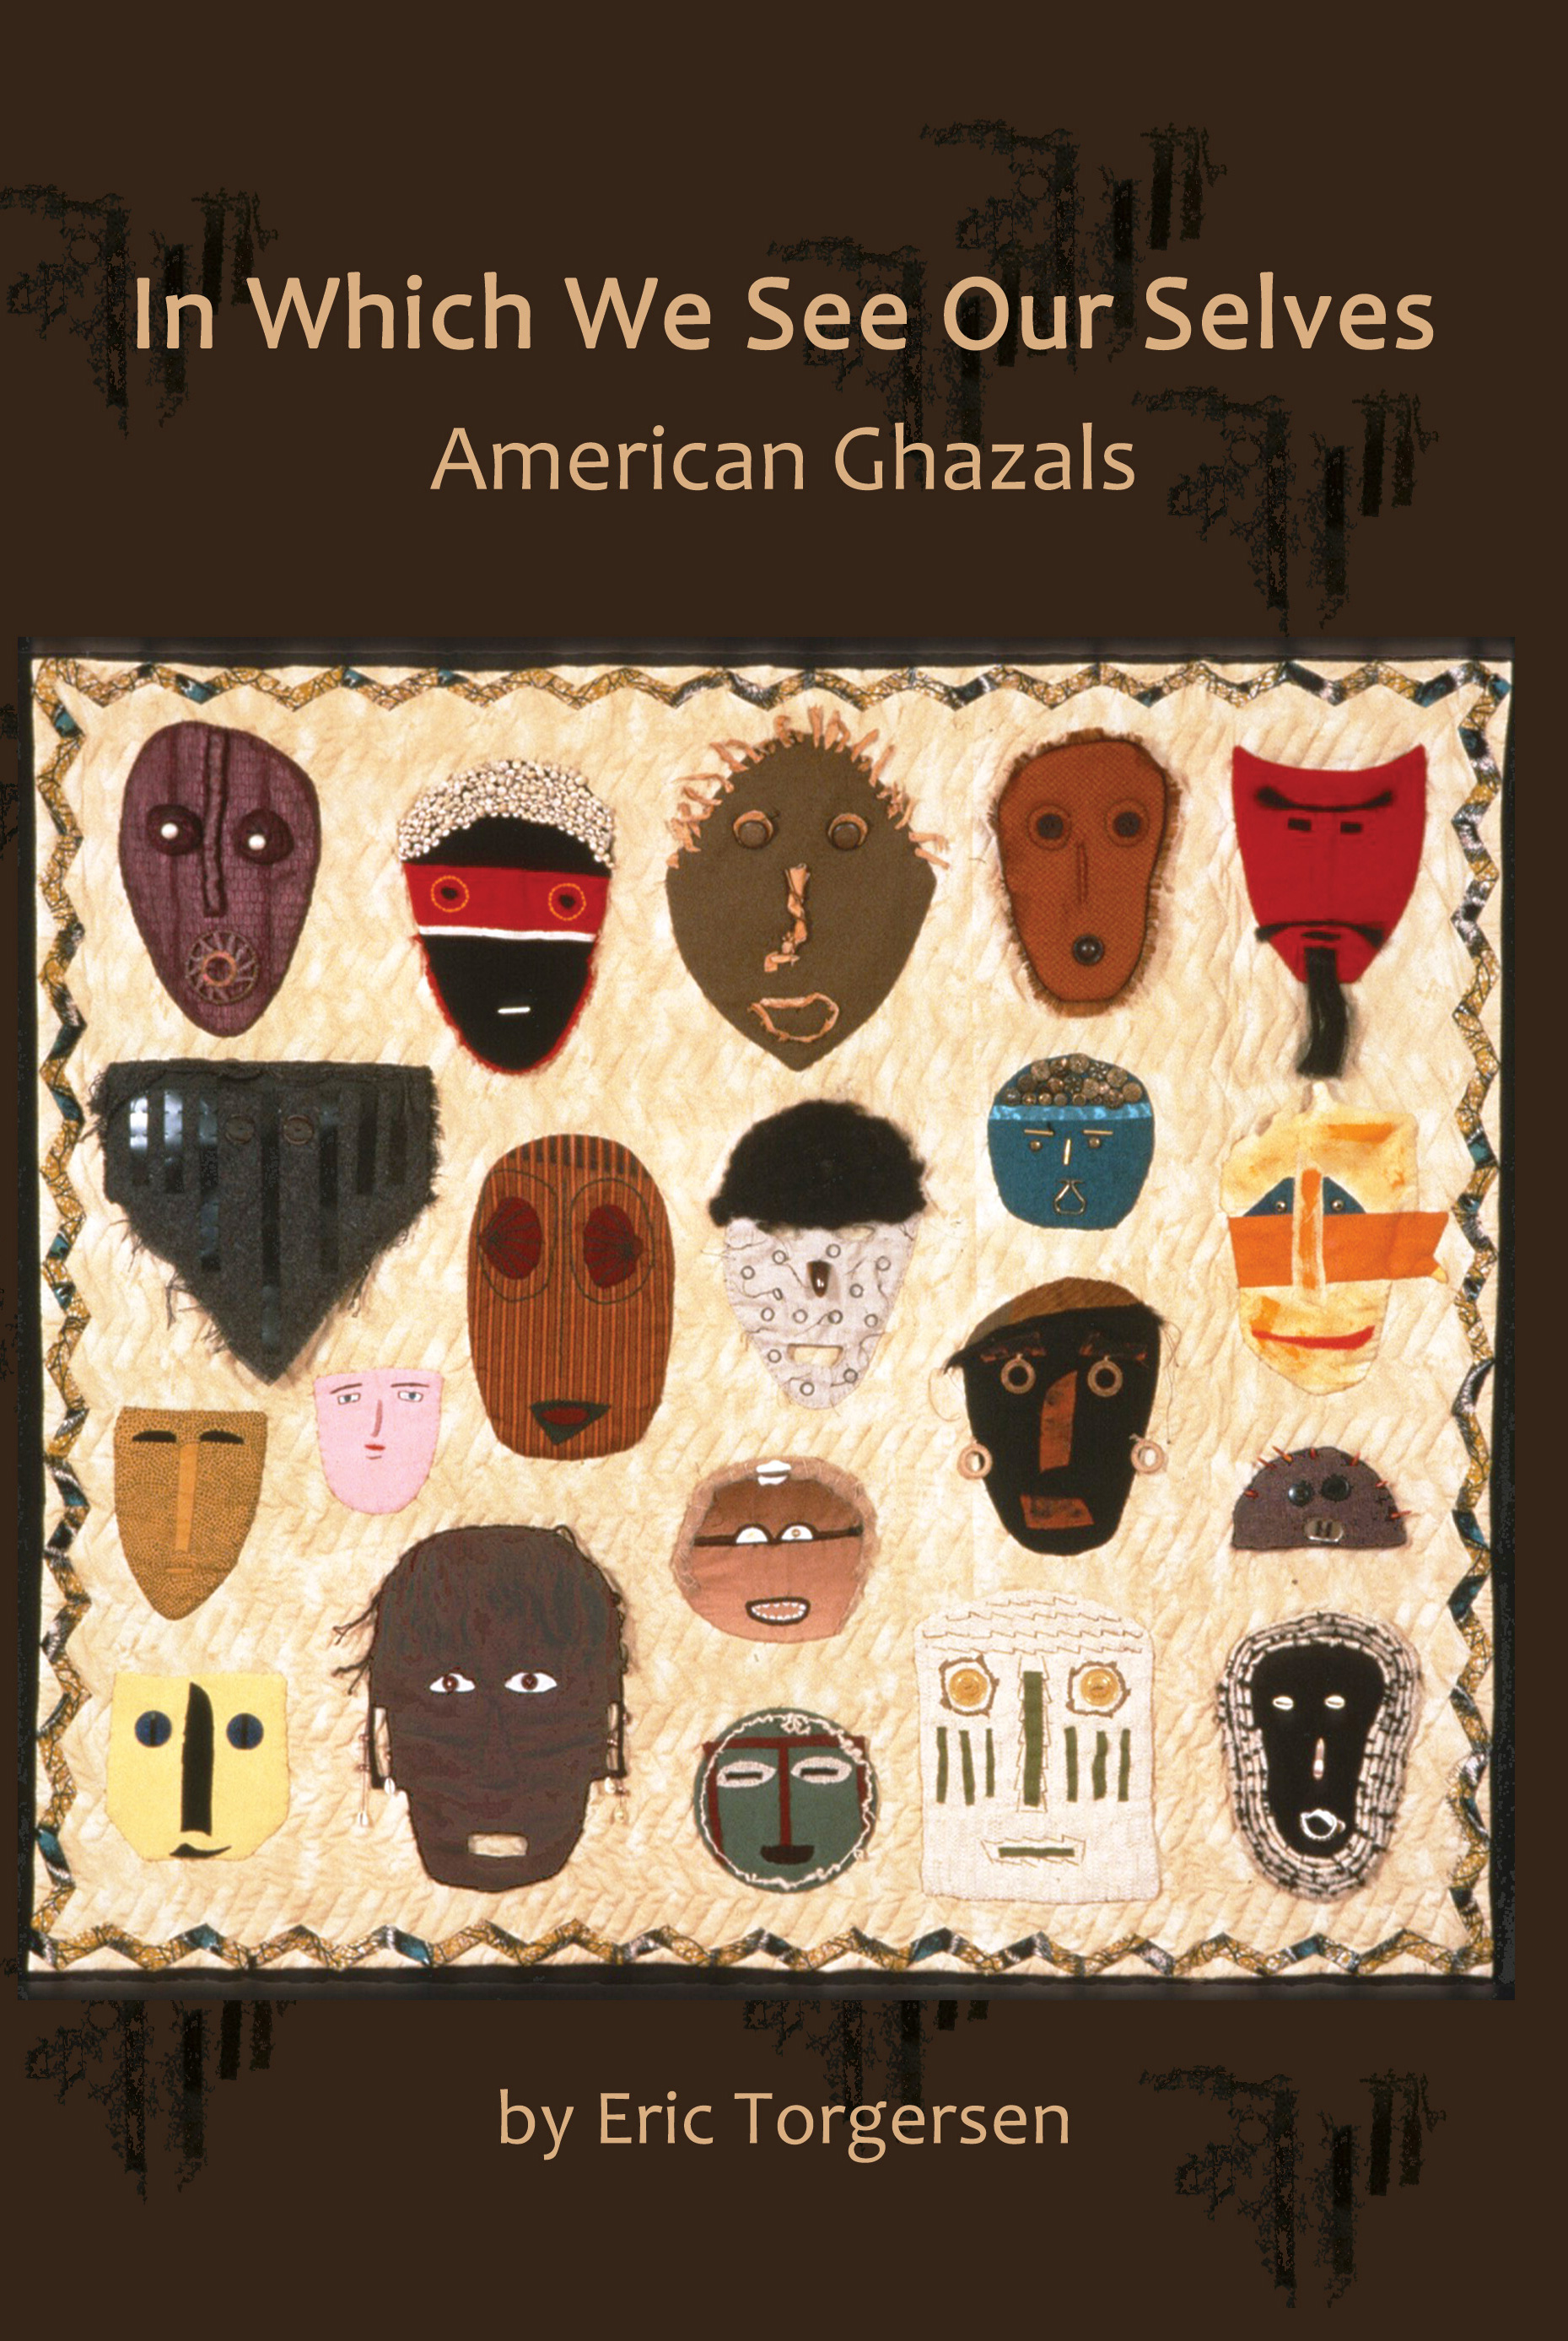 In Which We See Our Selves: American Ghazals